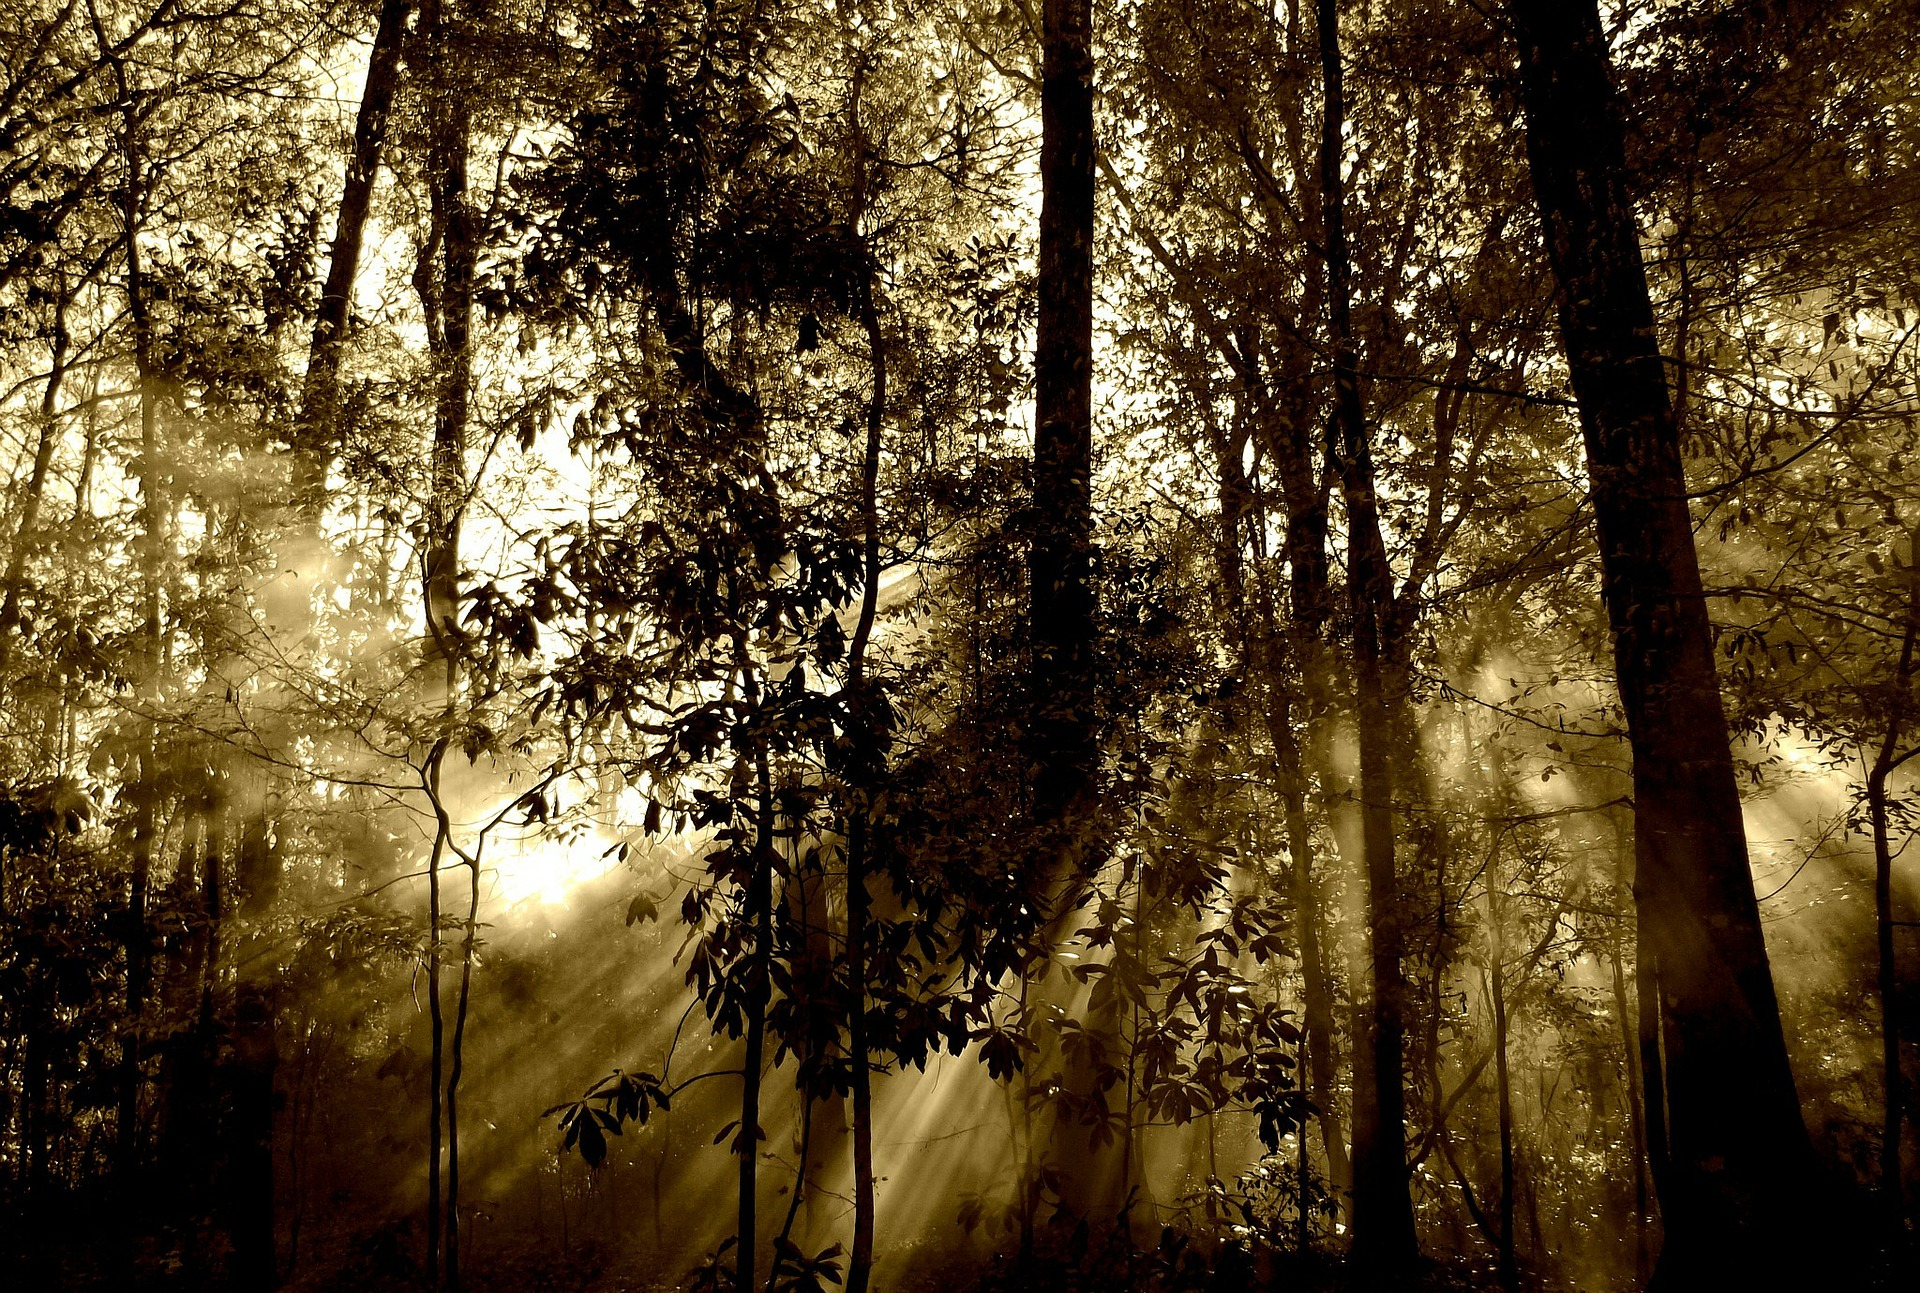 Image by lisa runnels from Pixabay